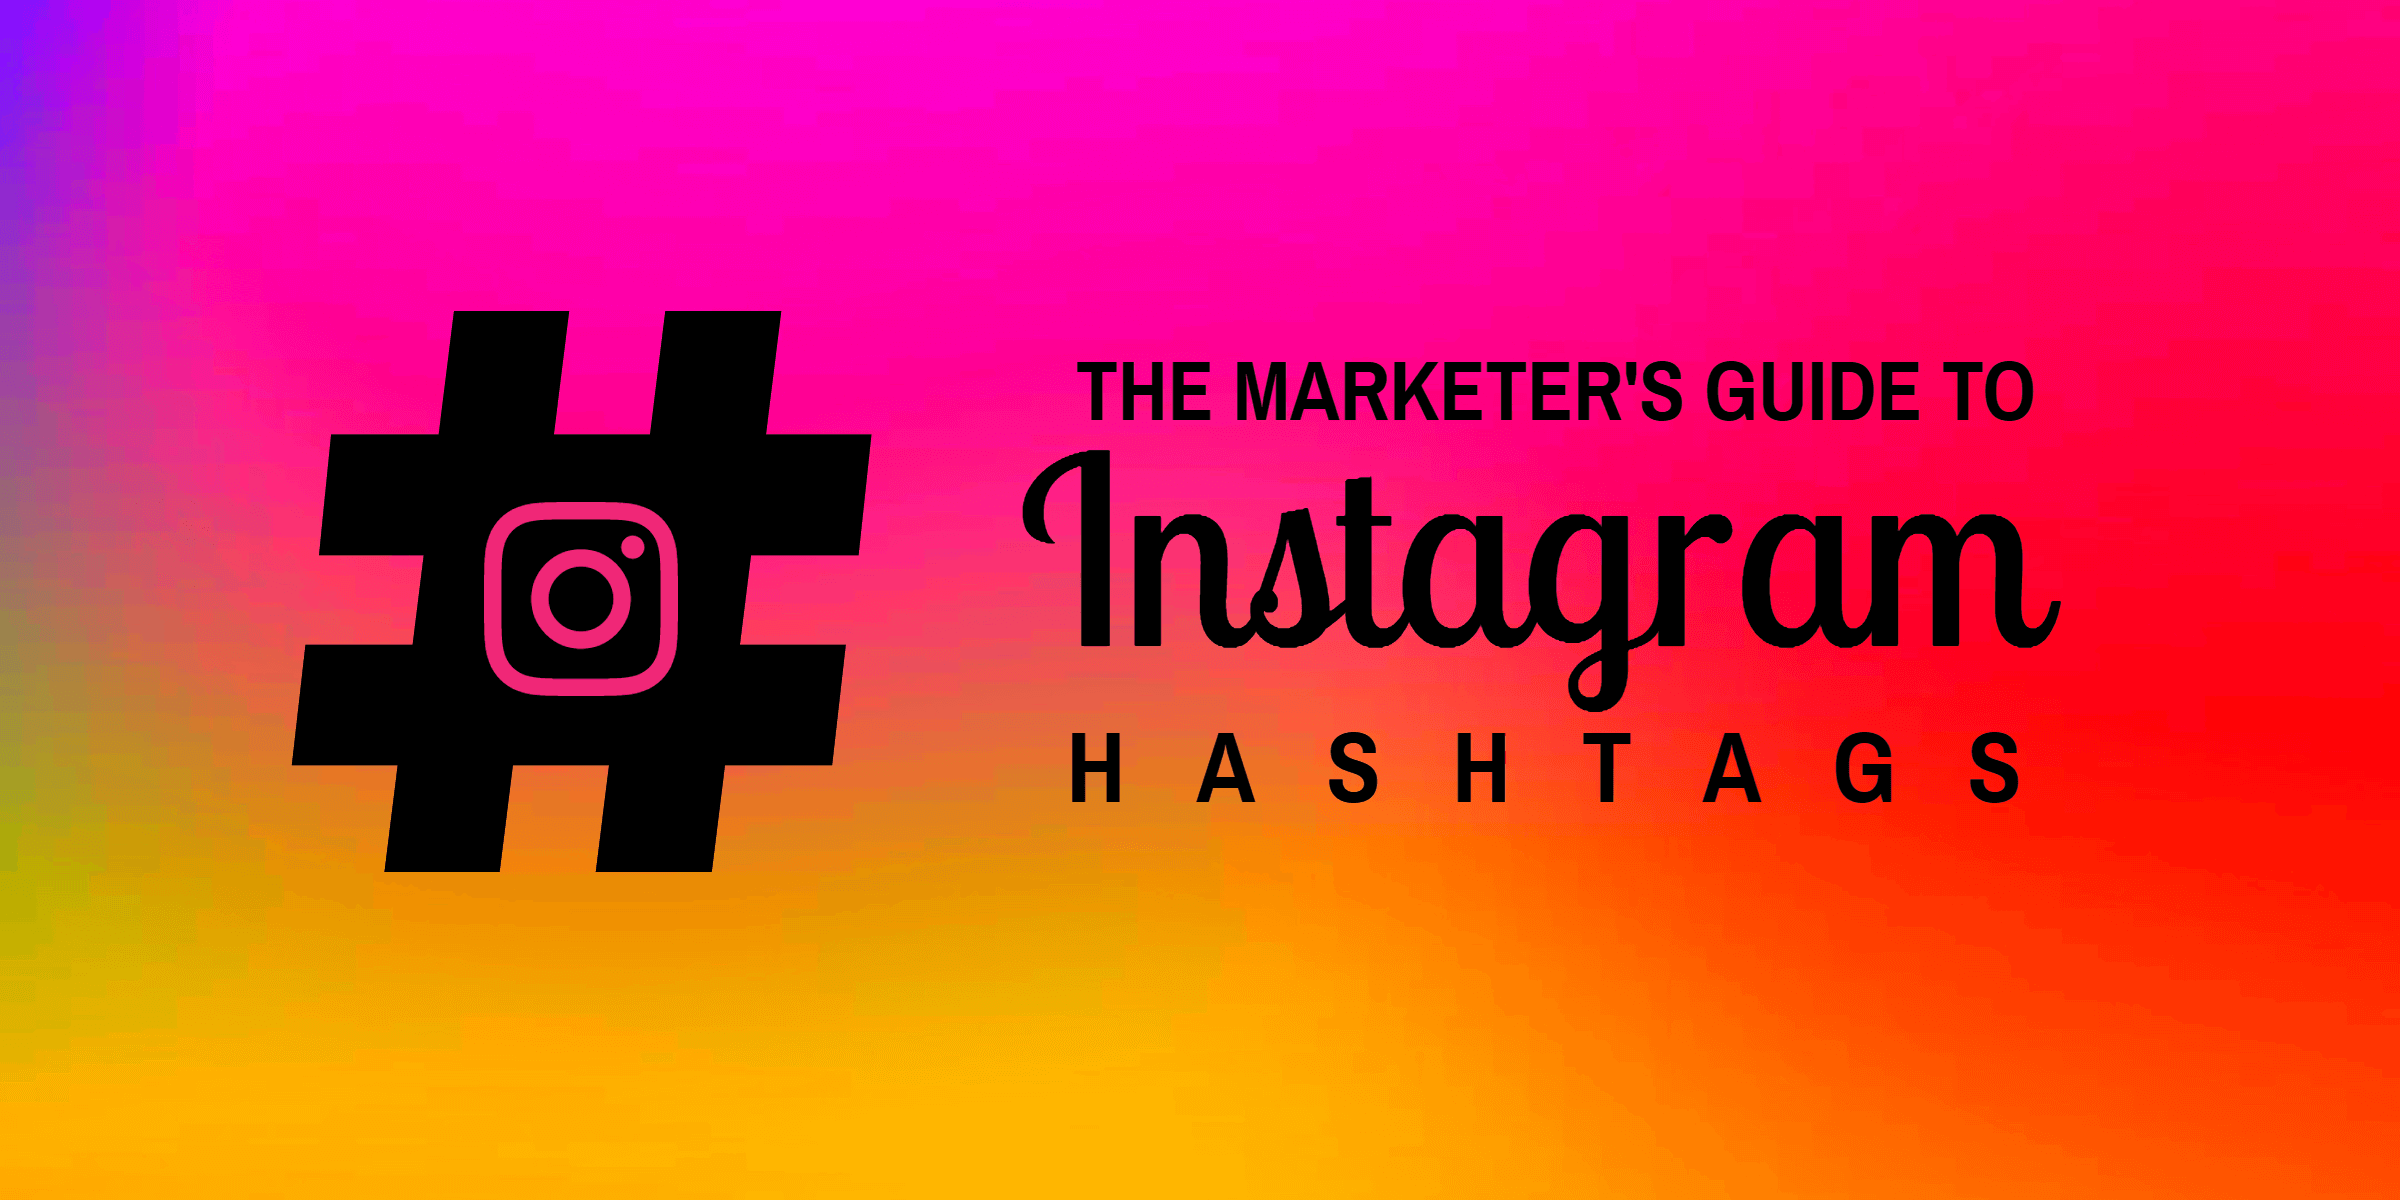 266 Instagram Hashtags That Will Increase Your Reach – Infographic